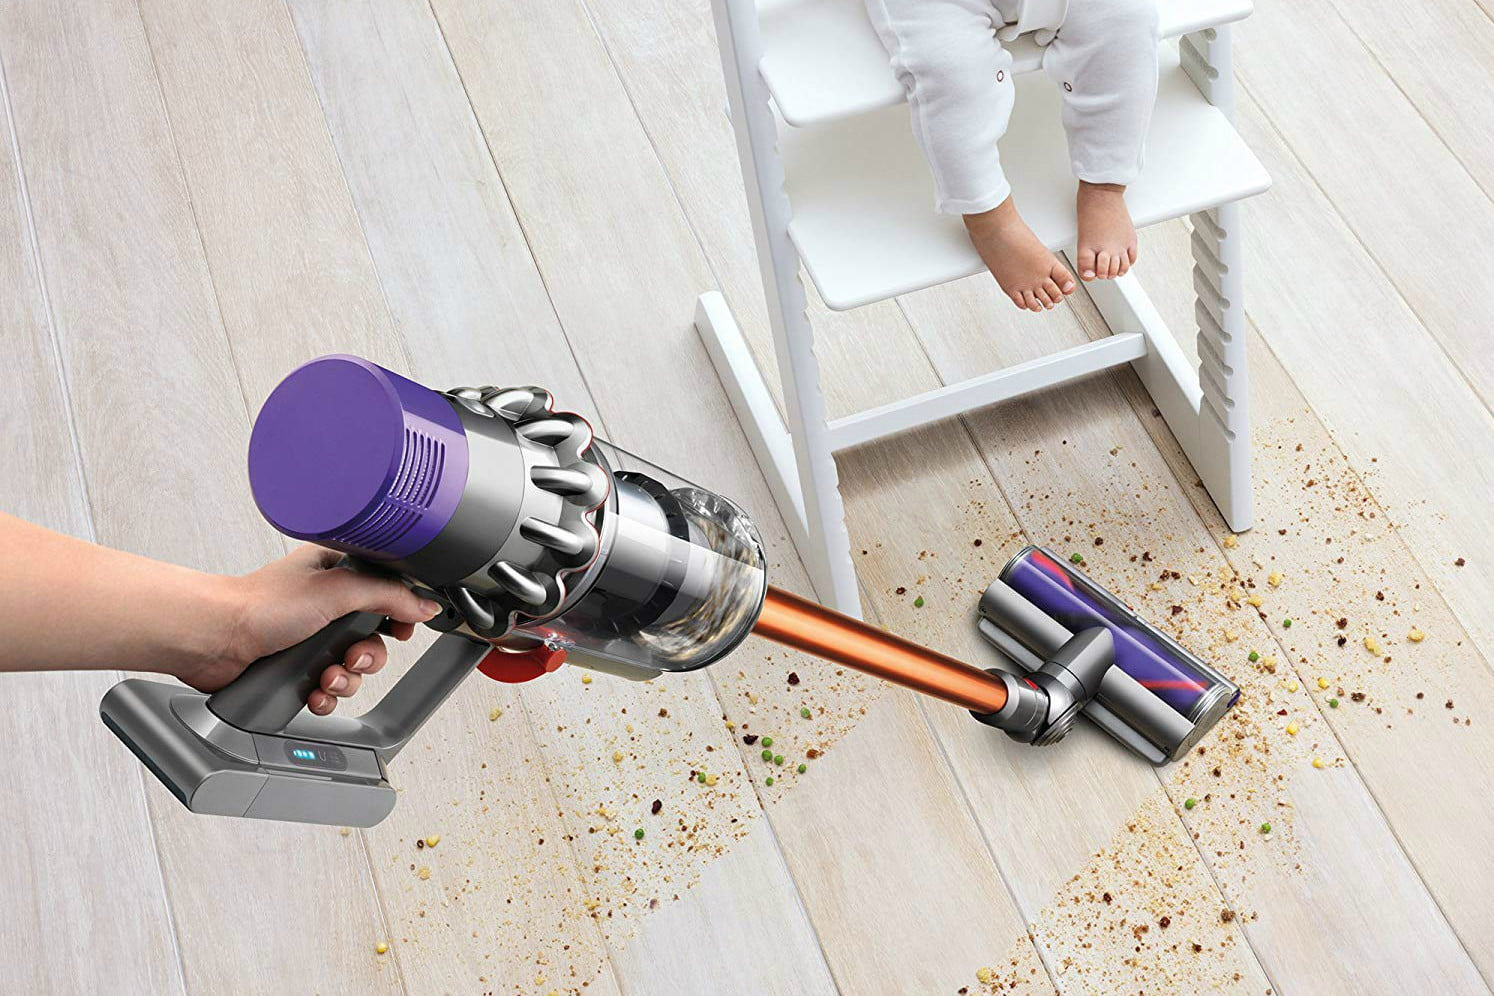 Amazon slashes price of the Dyson Cyclone V10 cordless vacuum by $203 off